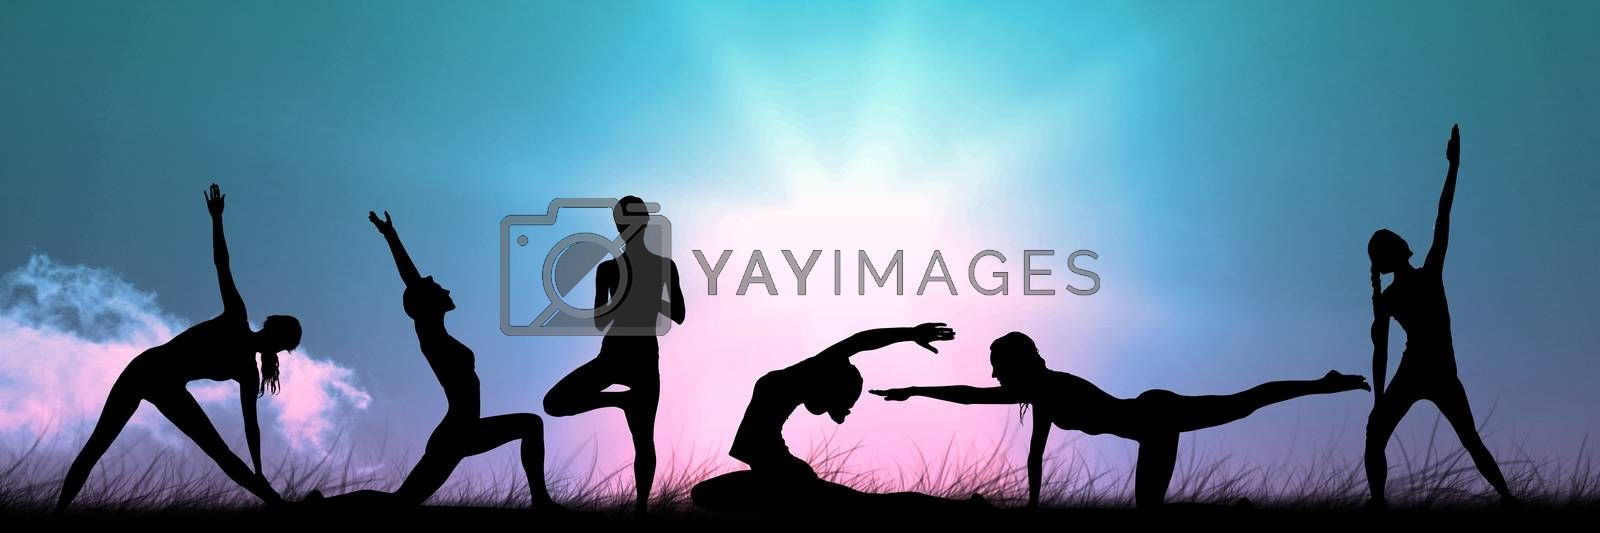 Digital composite of yoga group silhouette at sunset